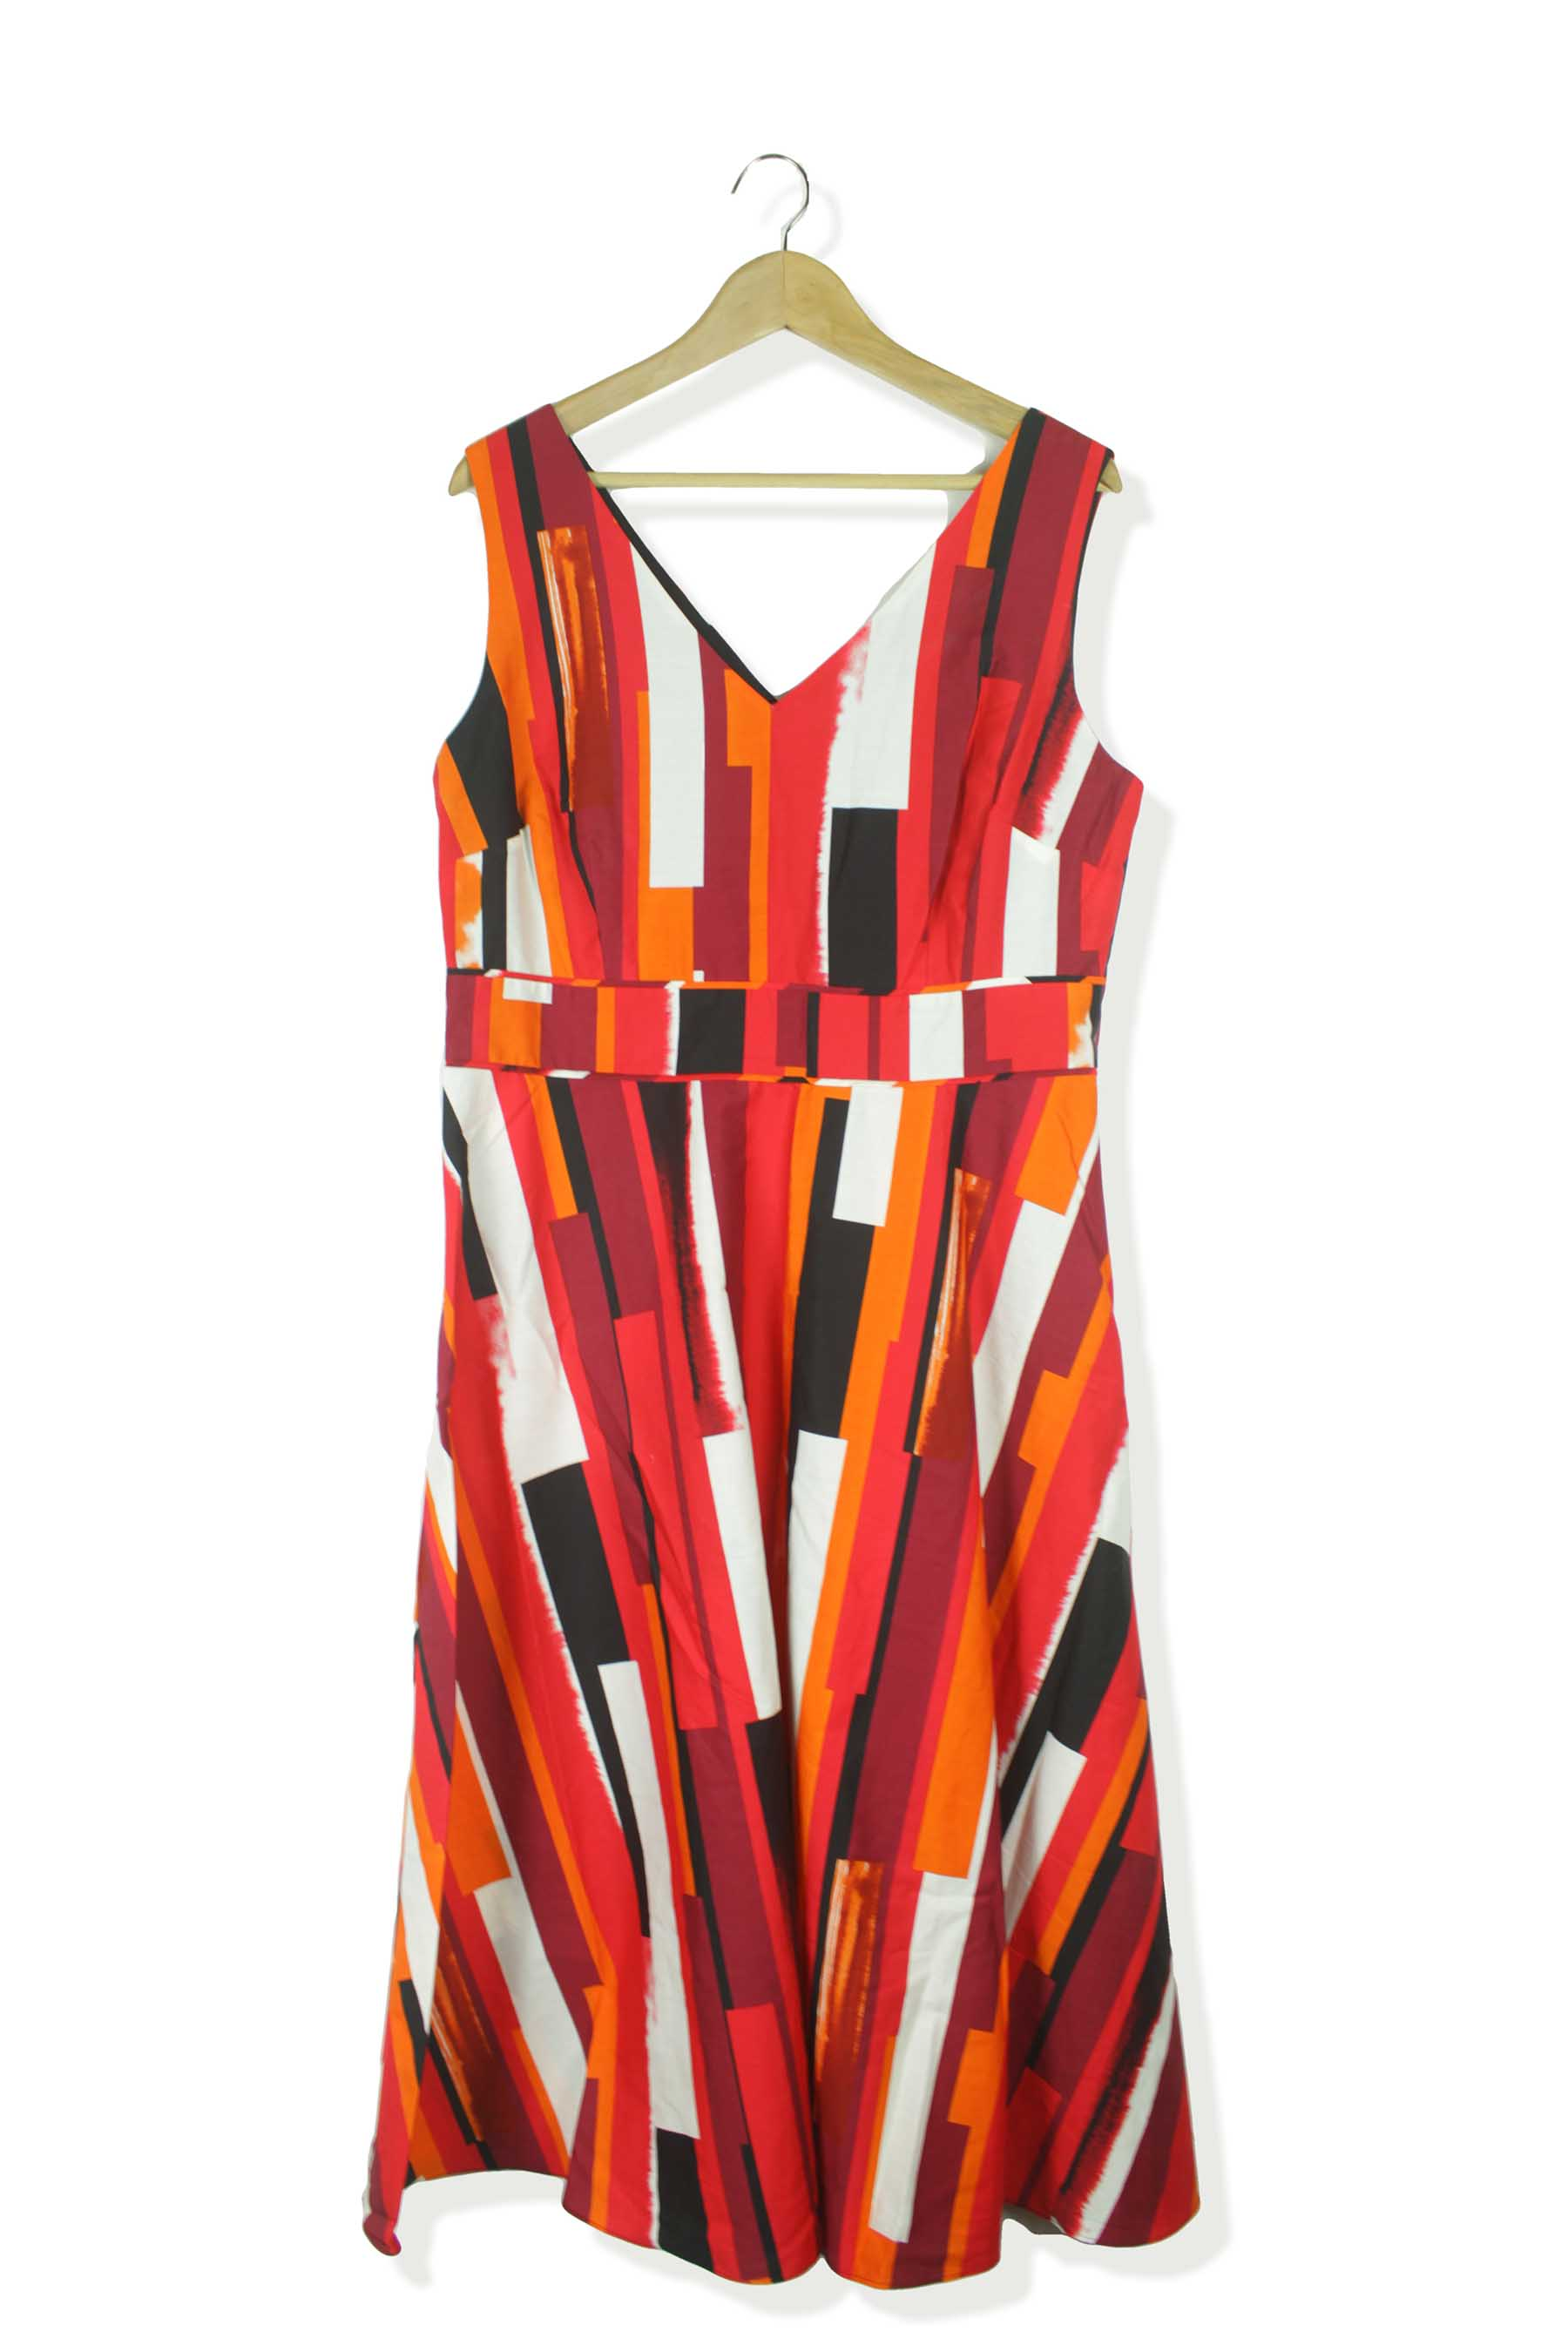 1d708c14132a2 ... summer sun dress Size 16. Sold Out. Previous. Second Hand Clothes